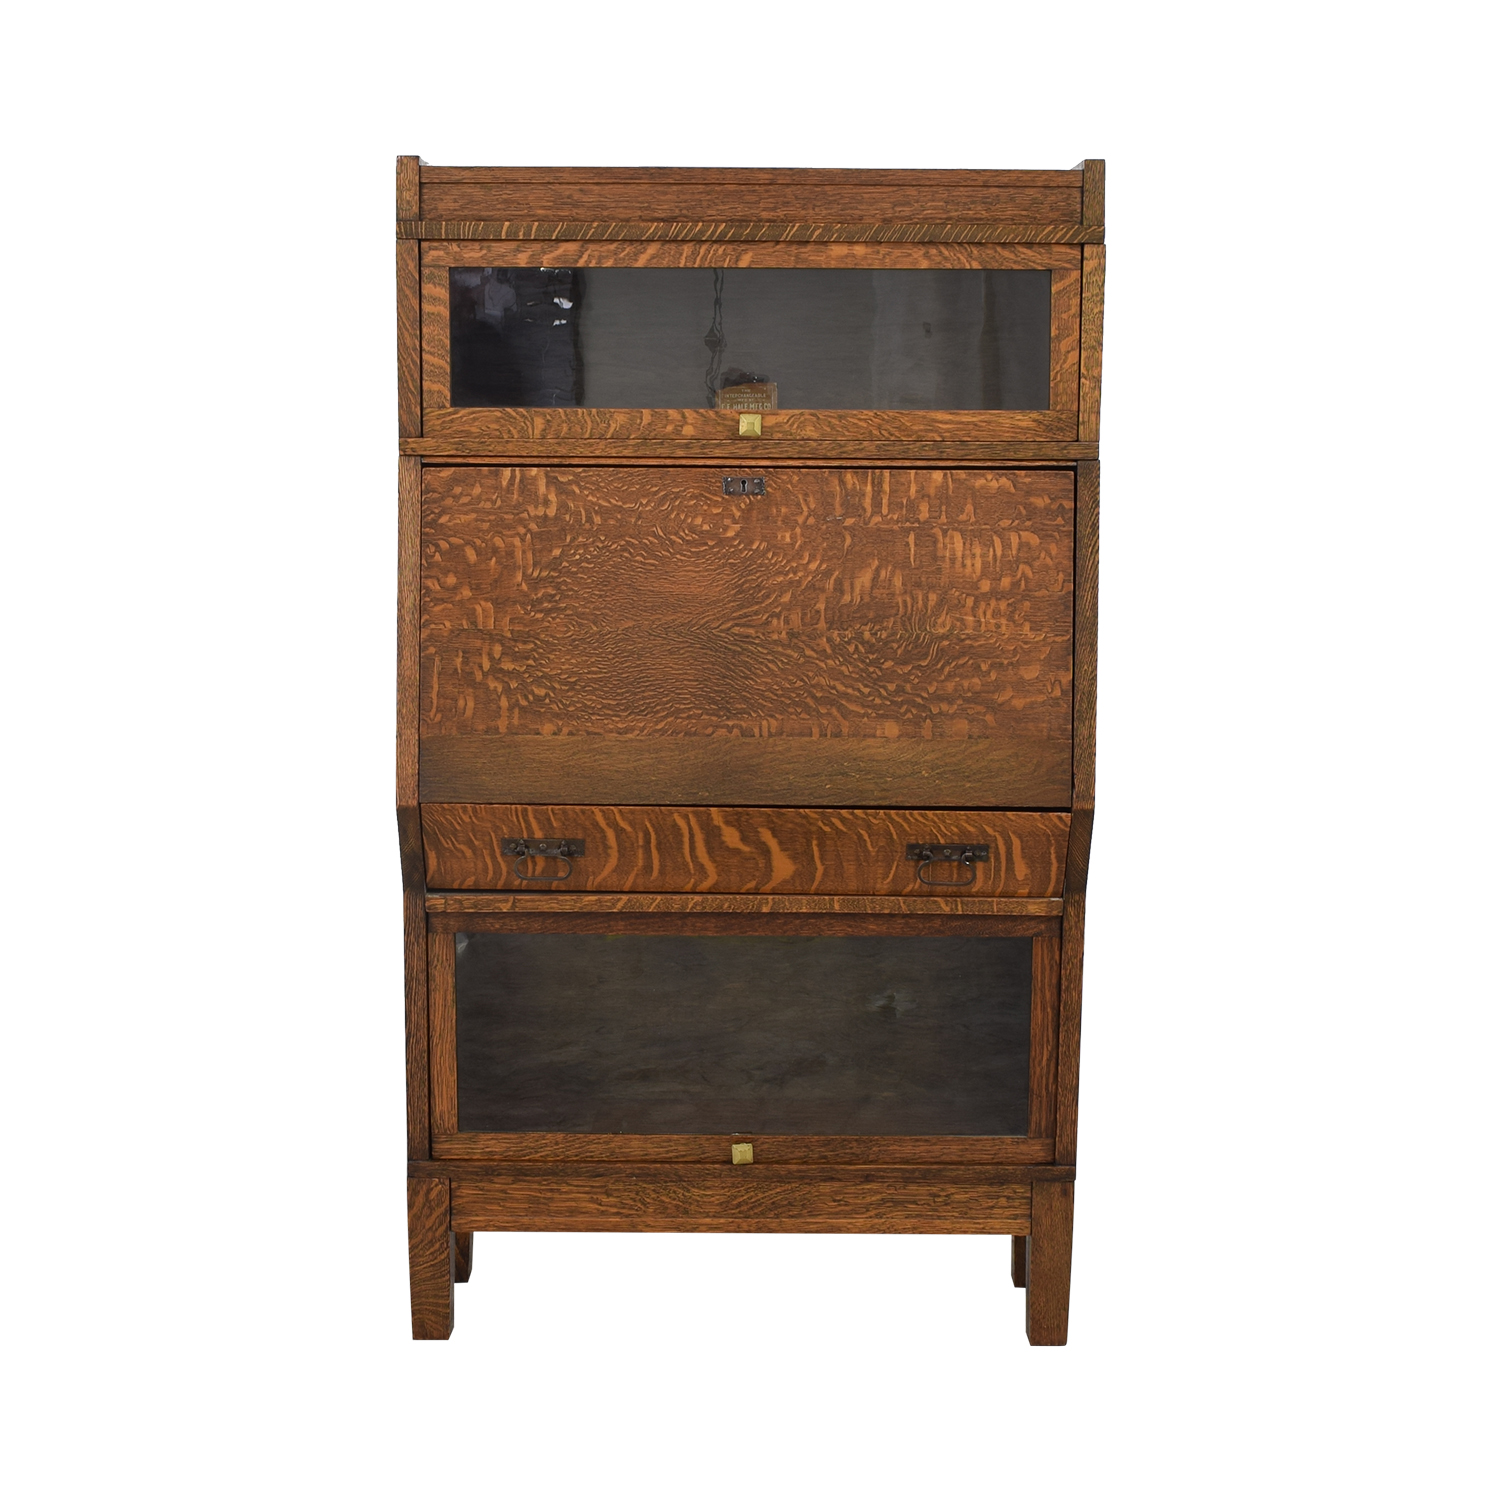 Hale Hale Manufacturing Early American Antique Secretary discount